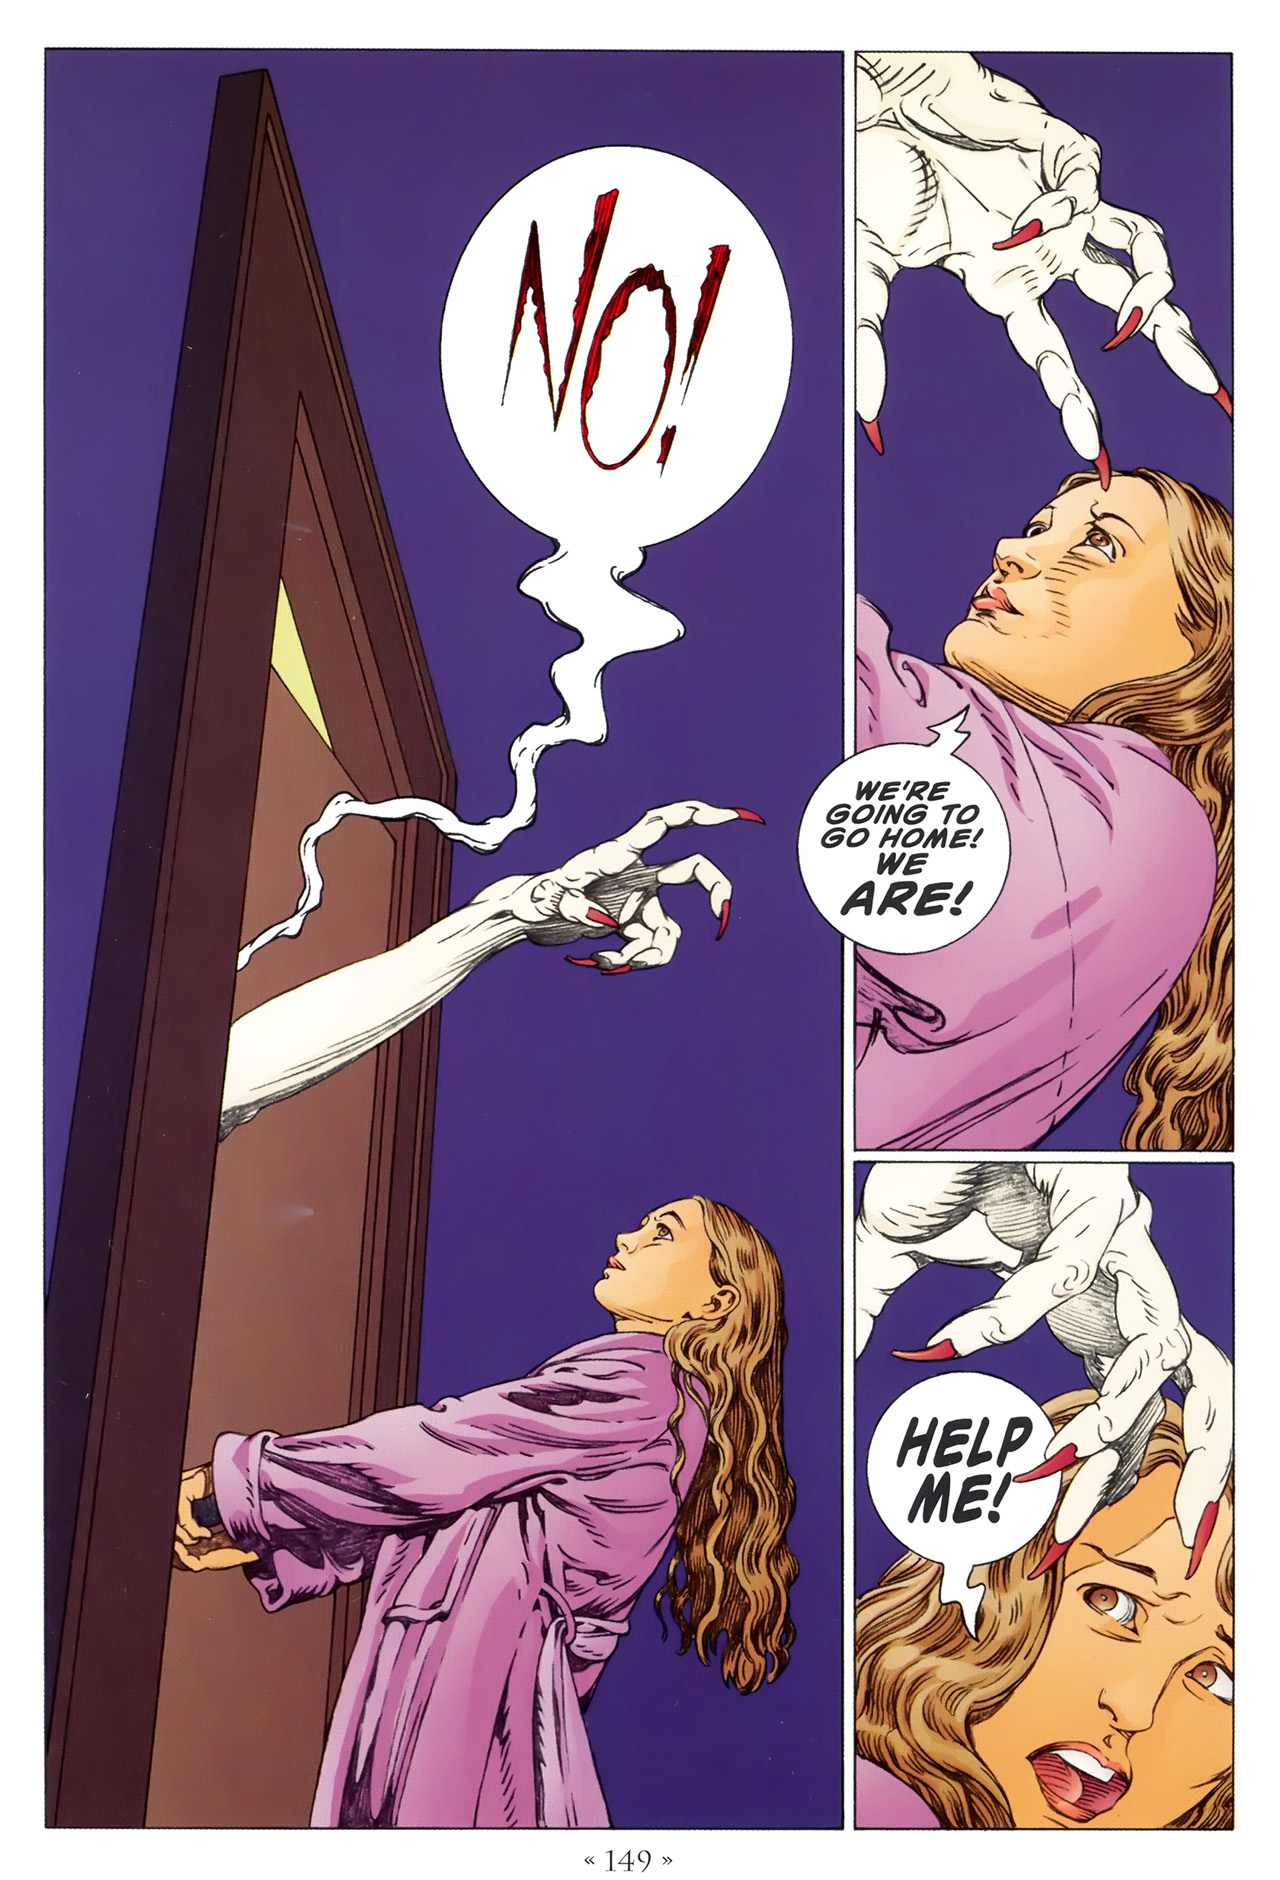 Read online Coraline comic -  Issue #1 - 155